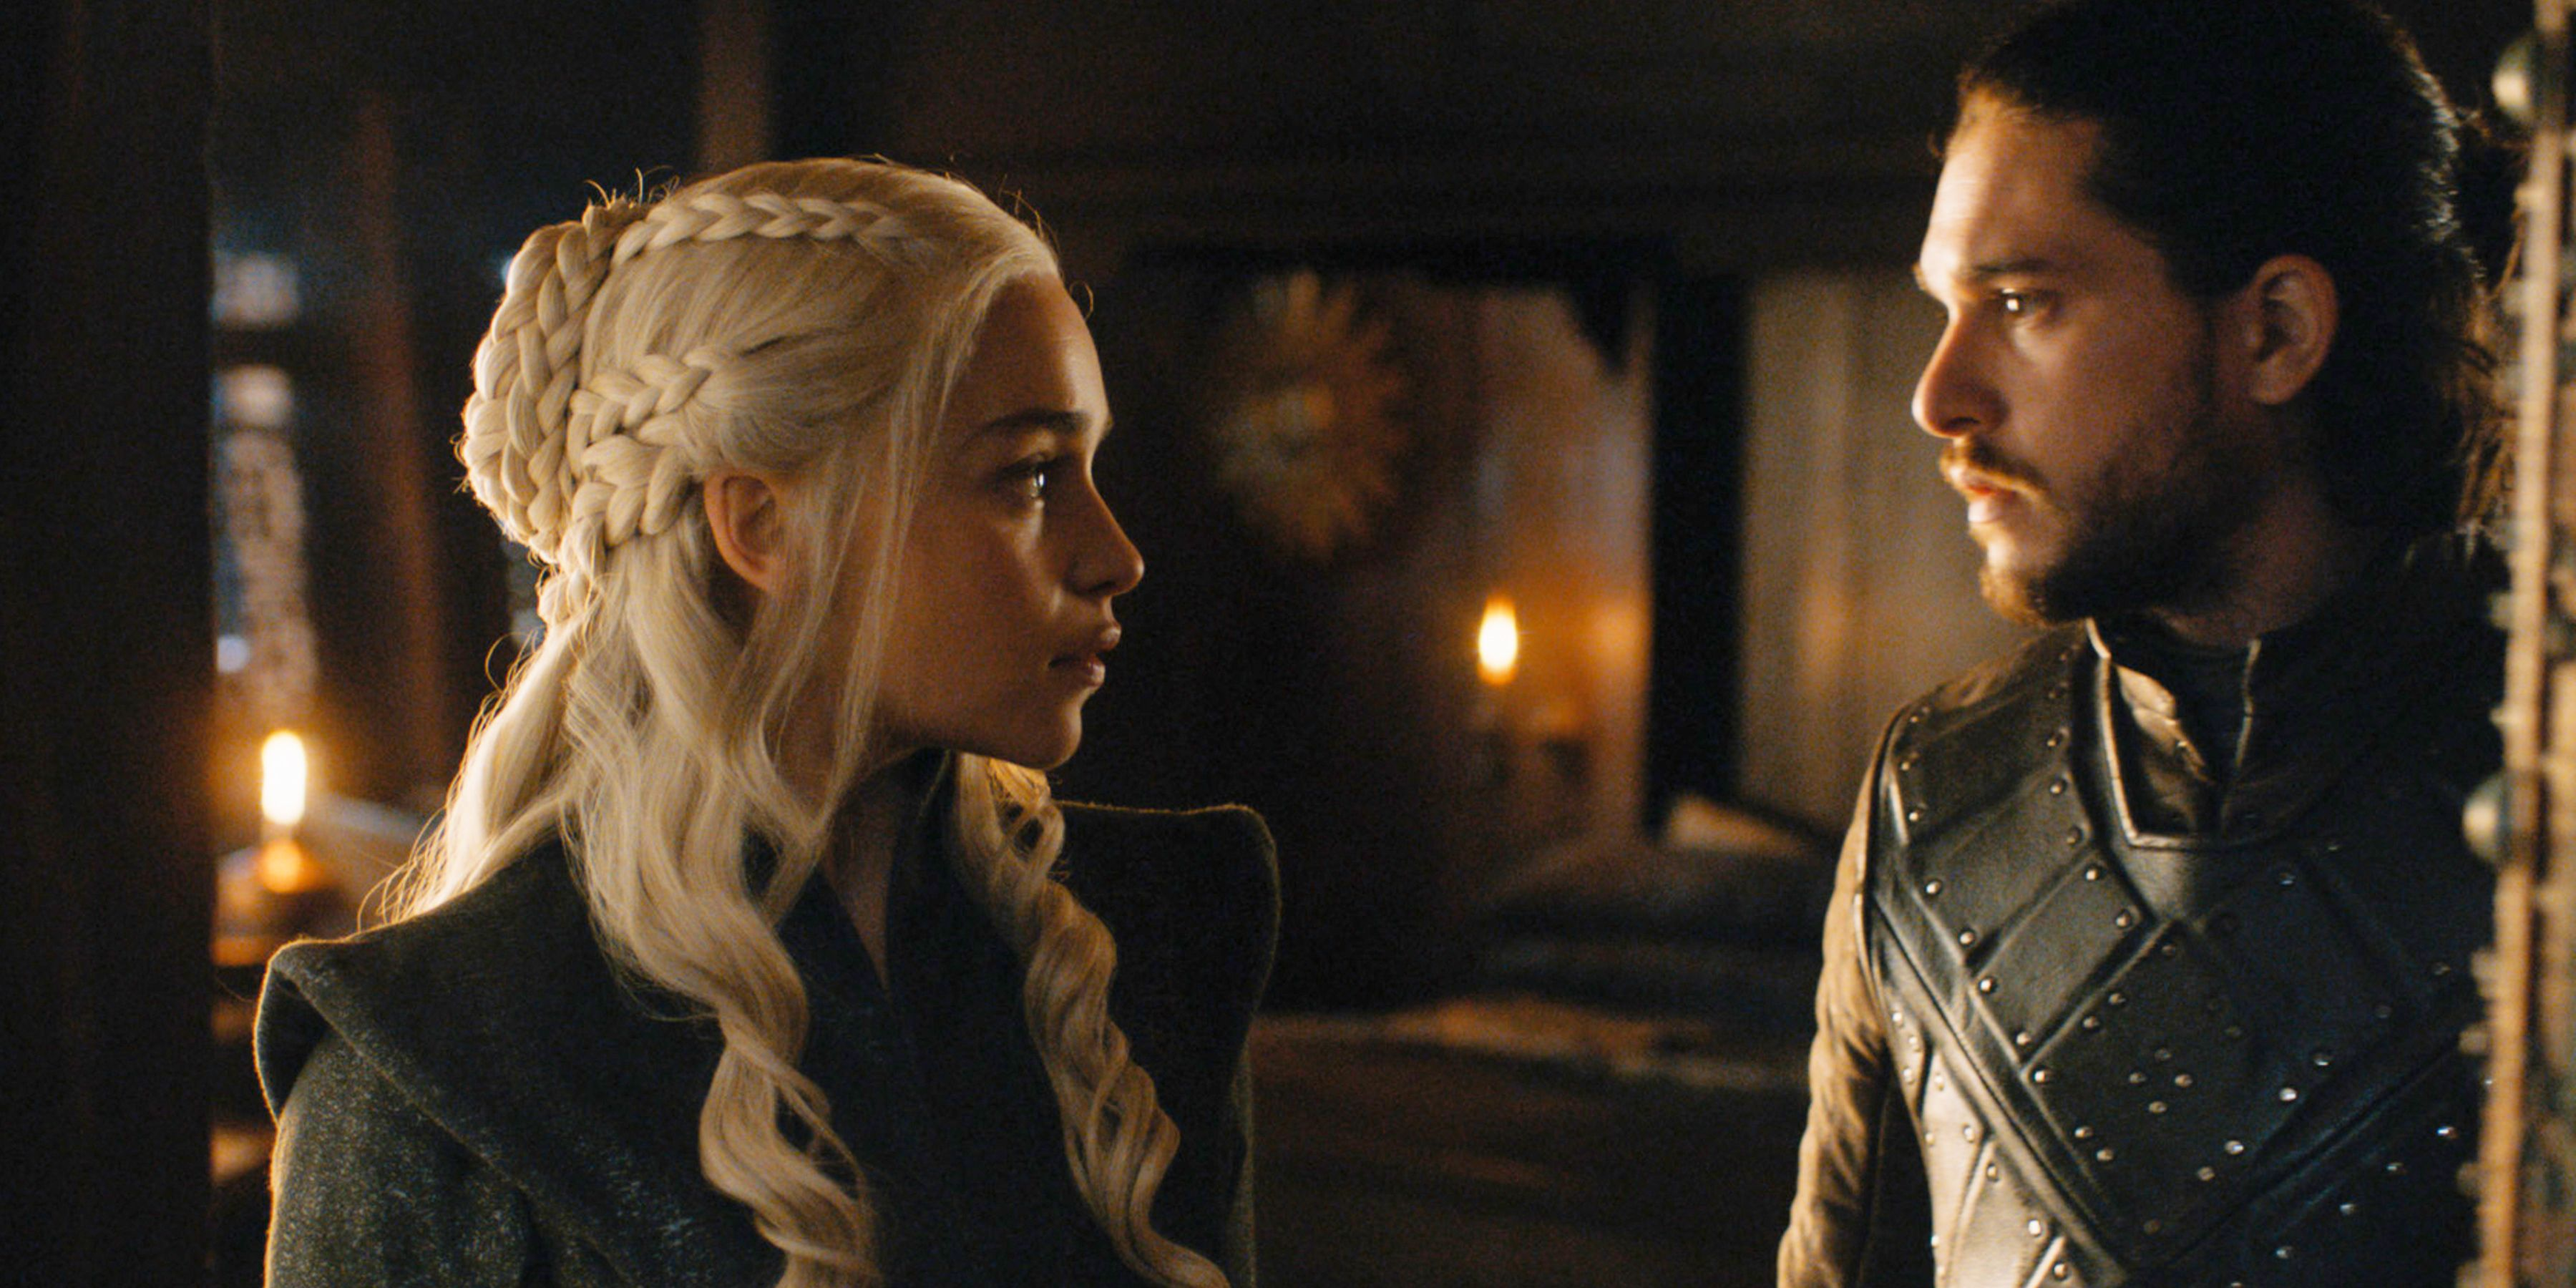 Jon Snow and Daenerys Targaryen Relationship Timeline - Best Game of